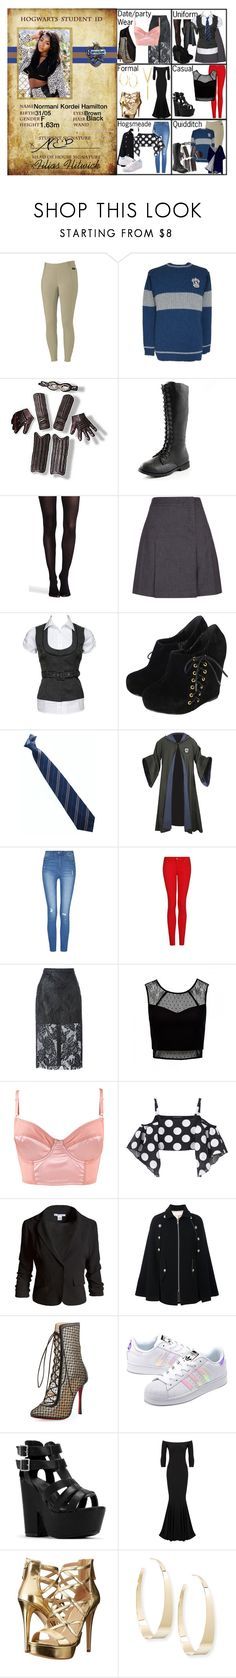 """""""Normani Kordei in Ravenclaw (HP)"""" by elmoakepoke ❤ liked on Polyvore featuring BLVD Supply, SPANX, Hobbs, MANGO, MSGM, Forever New, Forever 21, Kalmanovich, Sans Souci and See by Chloé"""